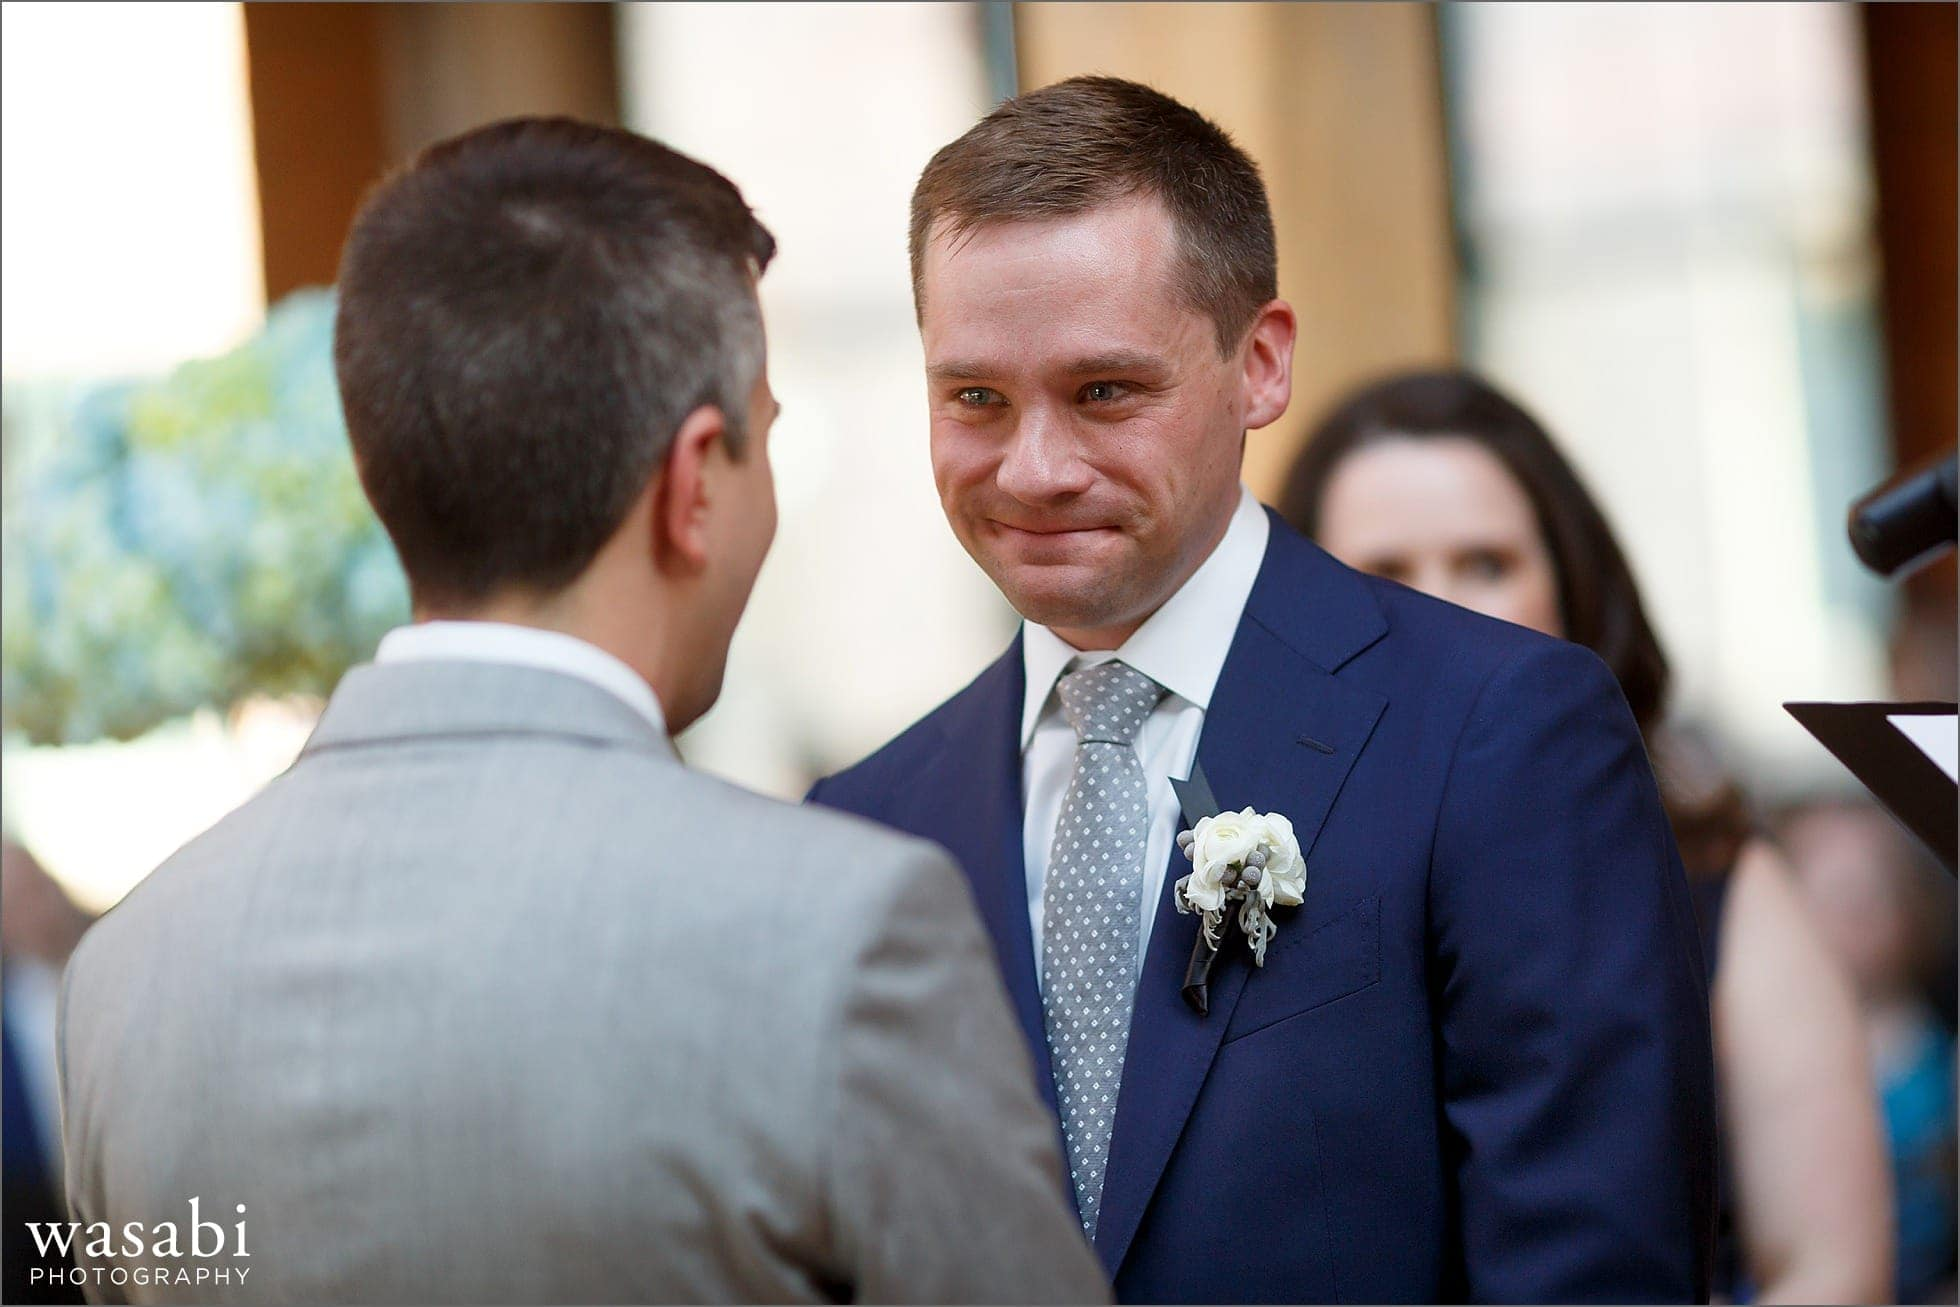 grooms look at each other during wedding ceremony